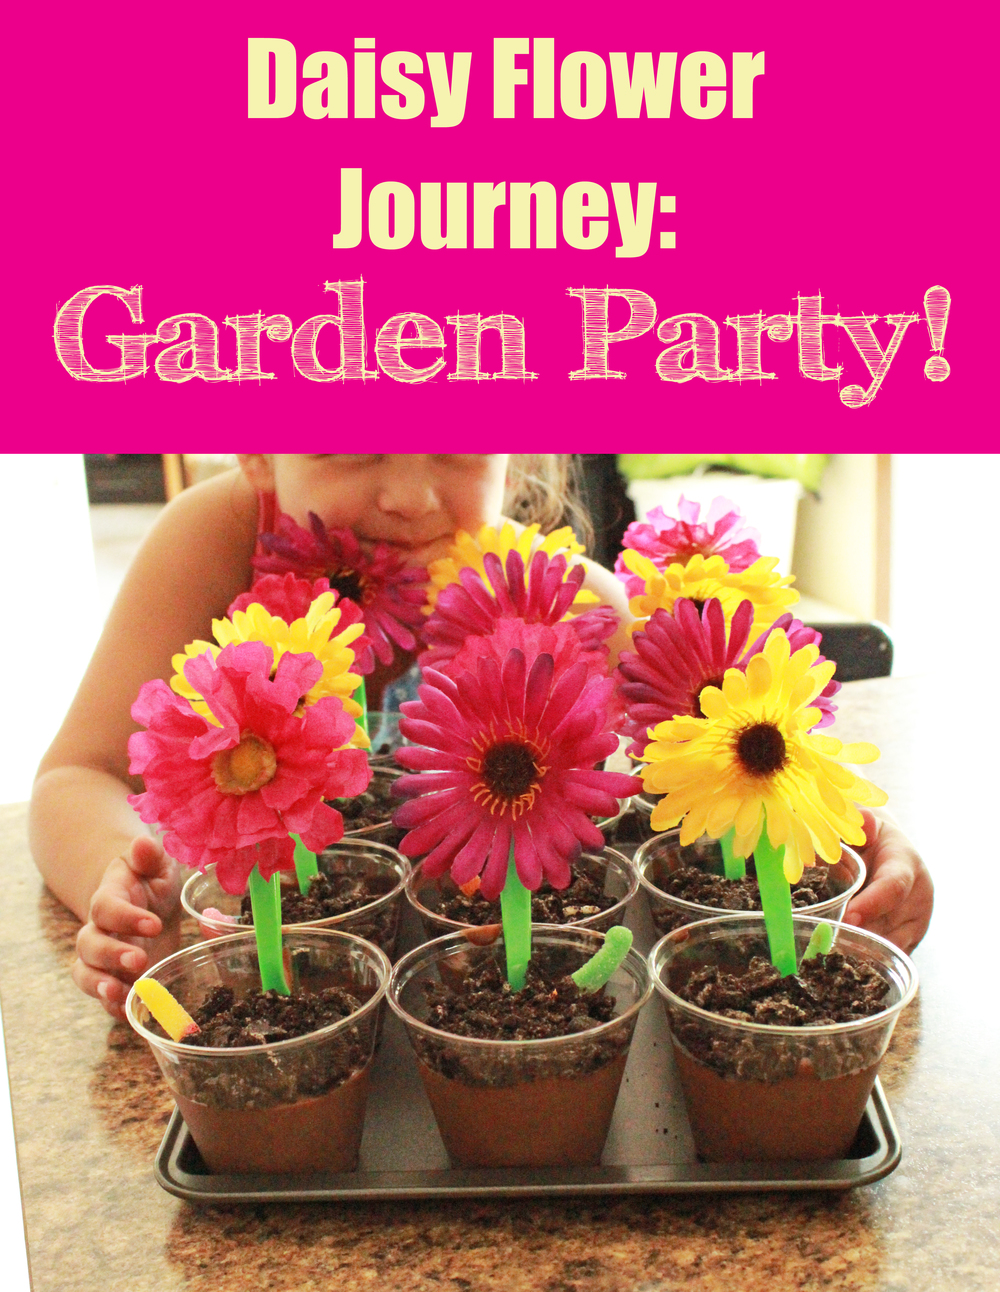 Post mighty girls rock daisy flower garden journey garden party dhlflorist Image collections